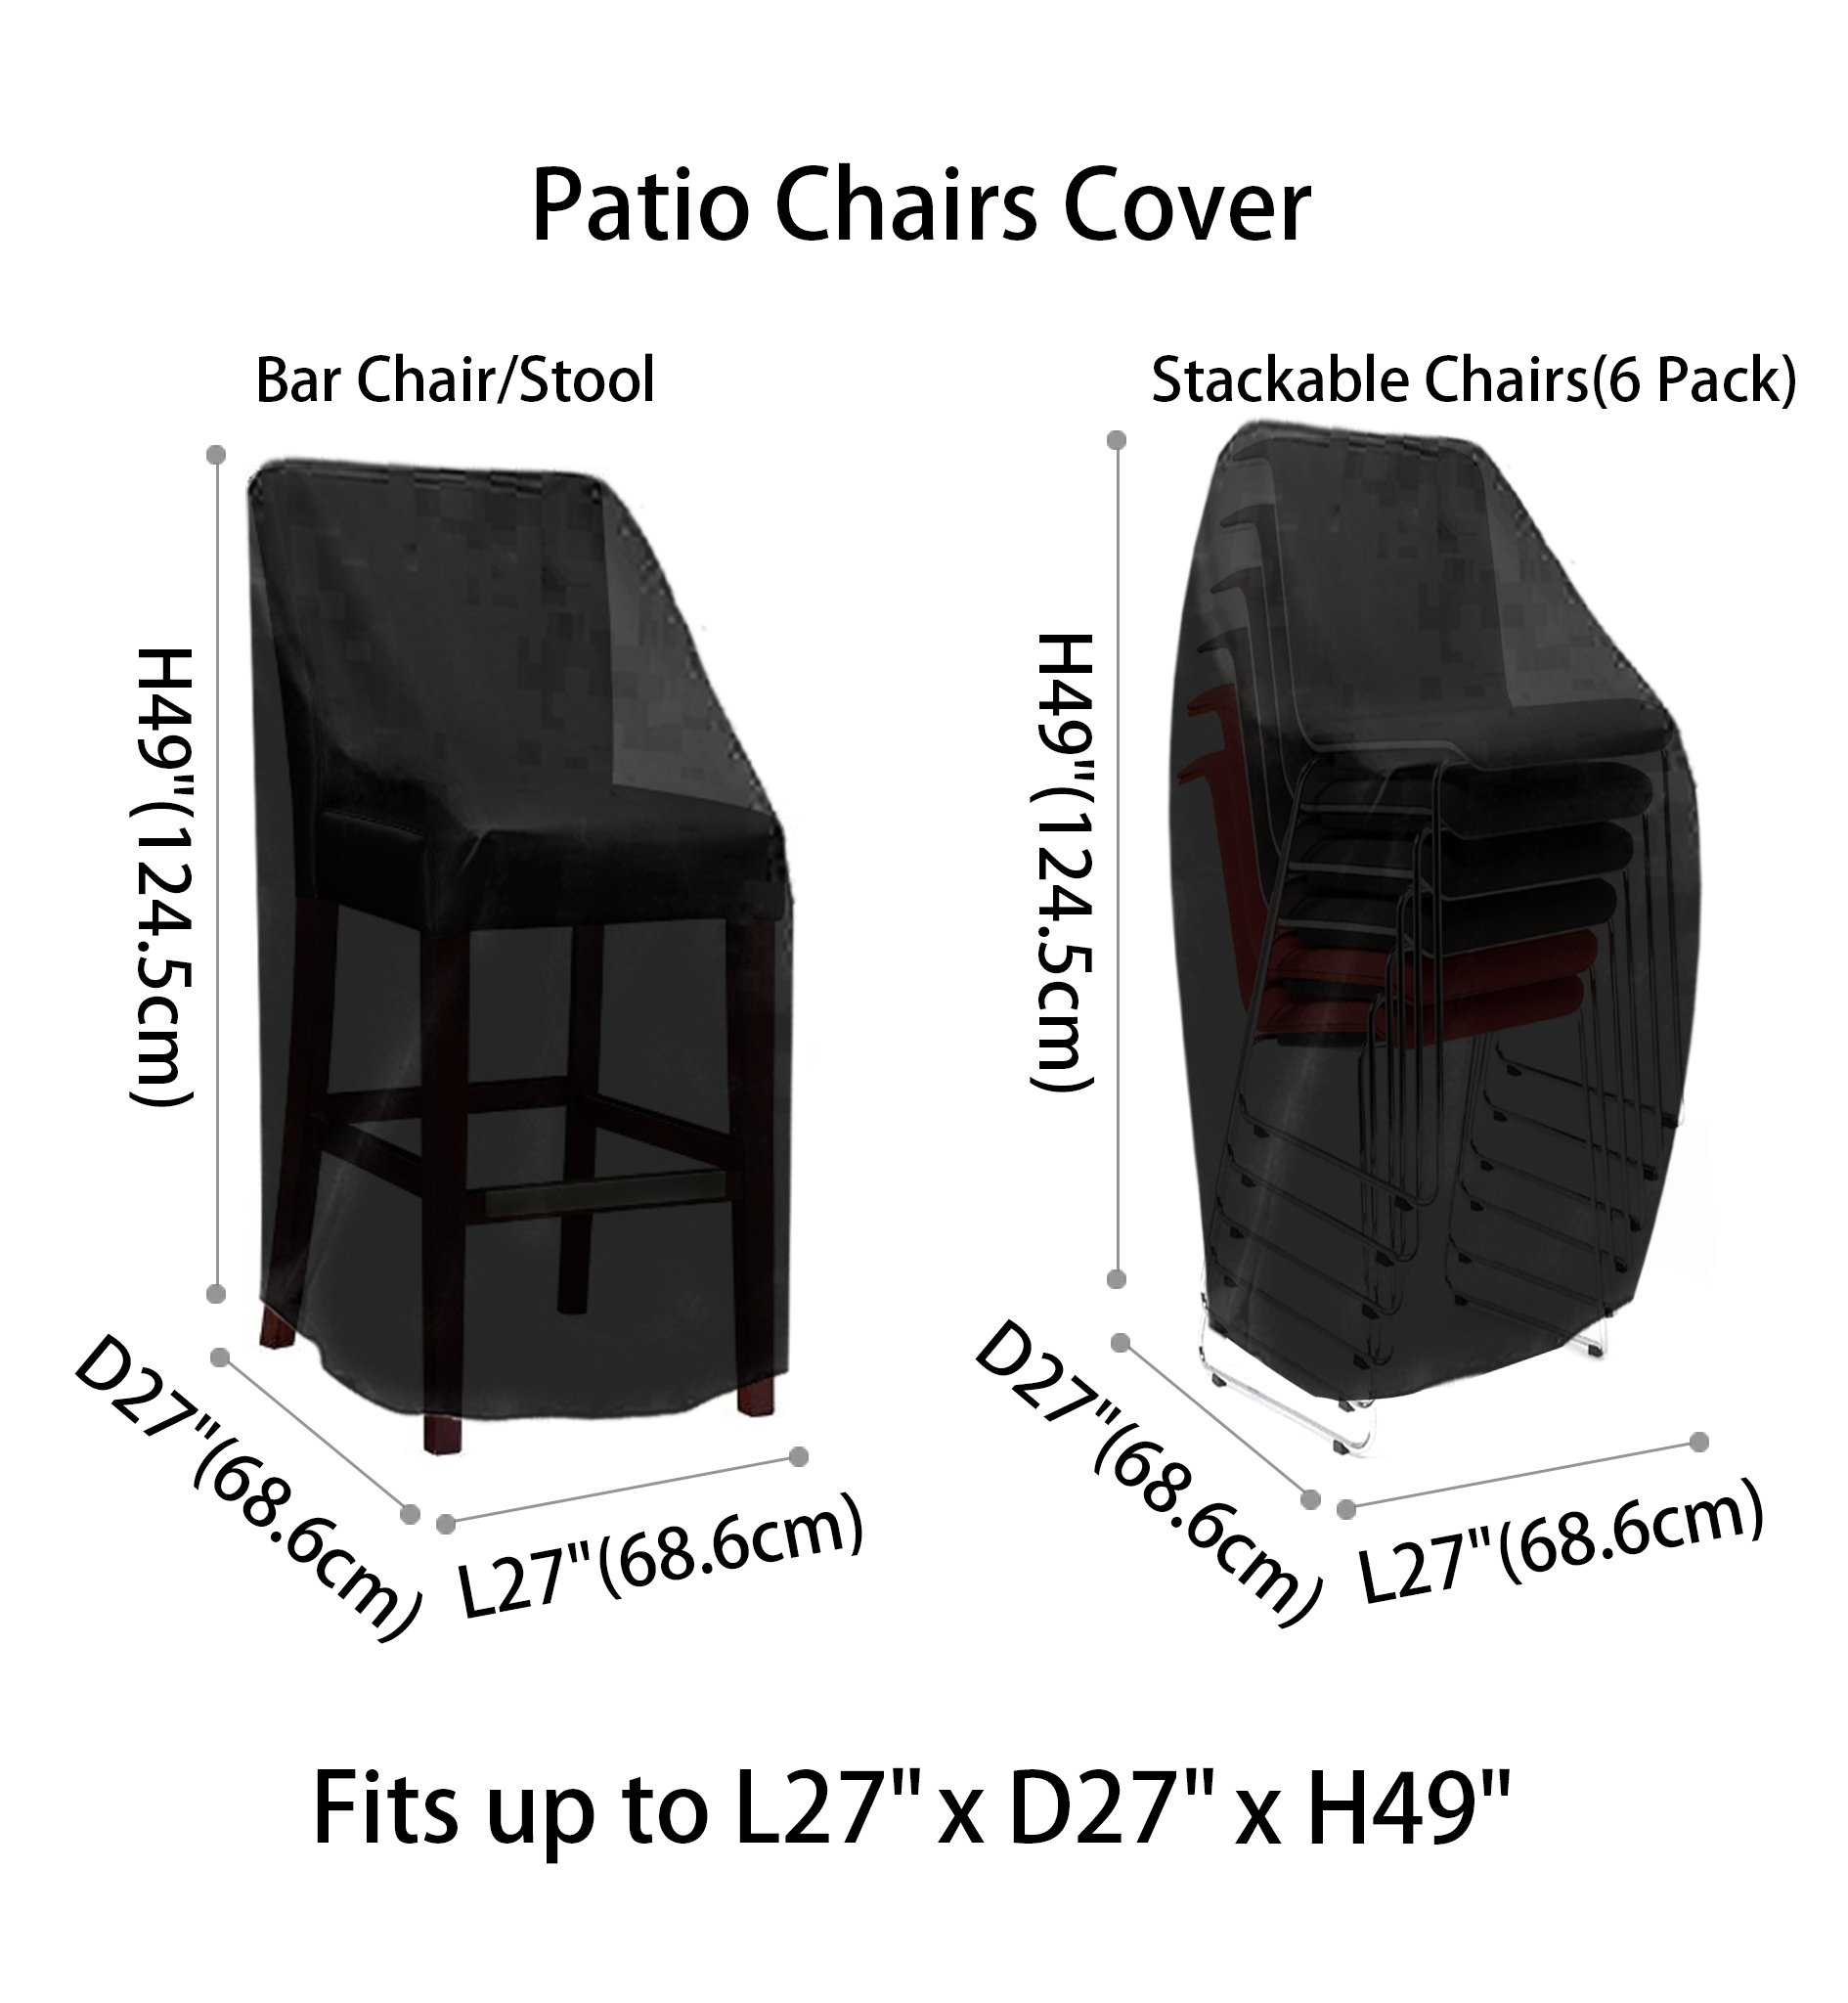 Patio Chair Covers Waterproof Durable Outdoor Bar Stool Cover Premium  Stairs Cover Stackable Chairs Cover Black Thick Oxford Cloth (L4.4 x D4.4  x